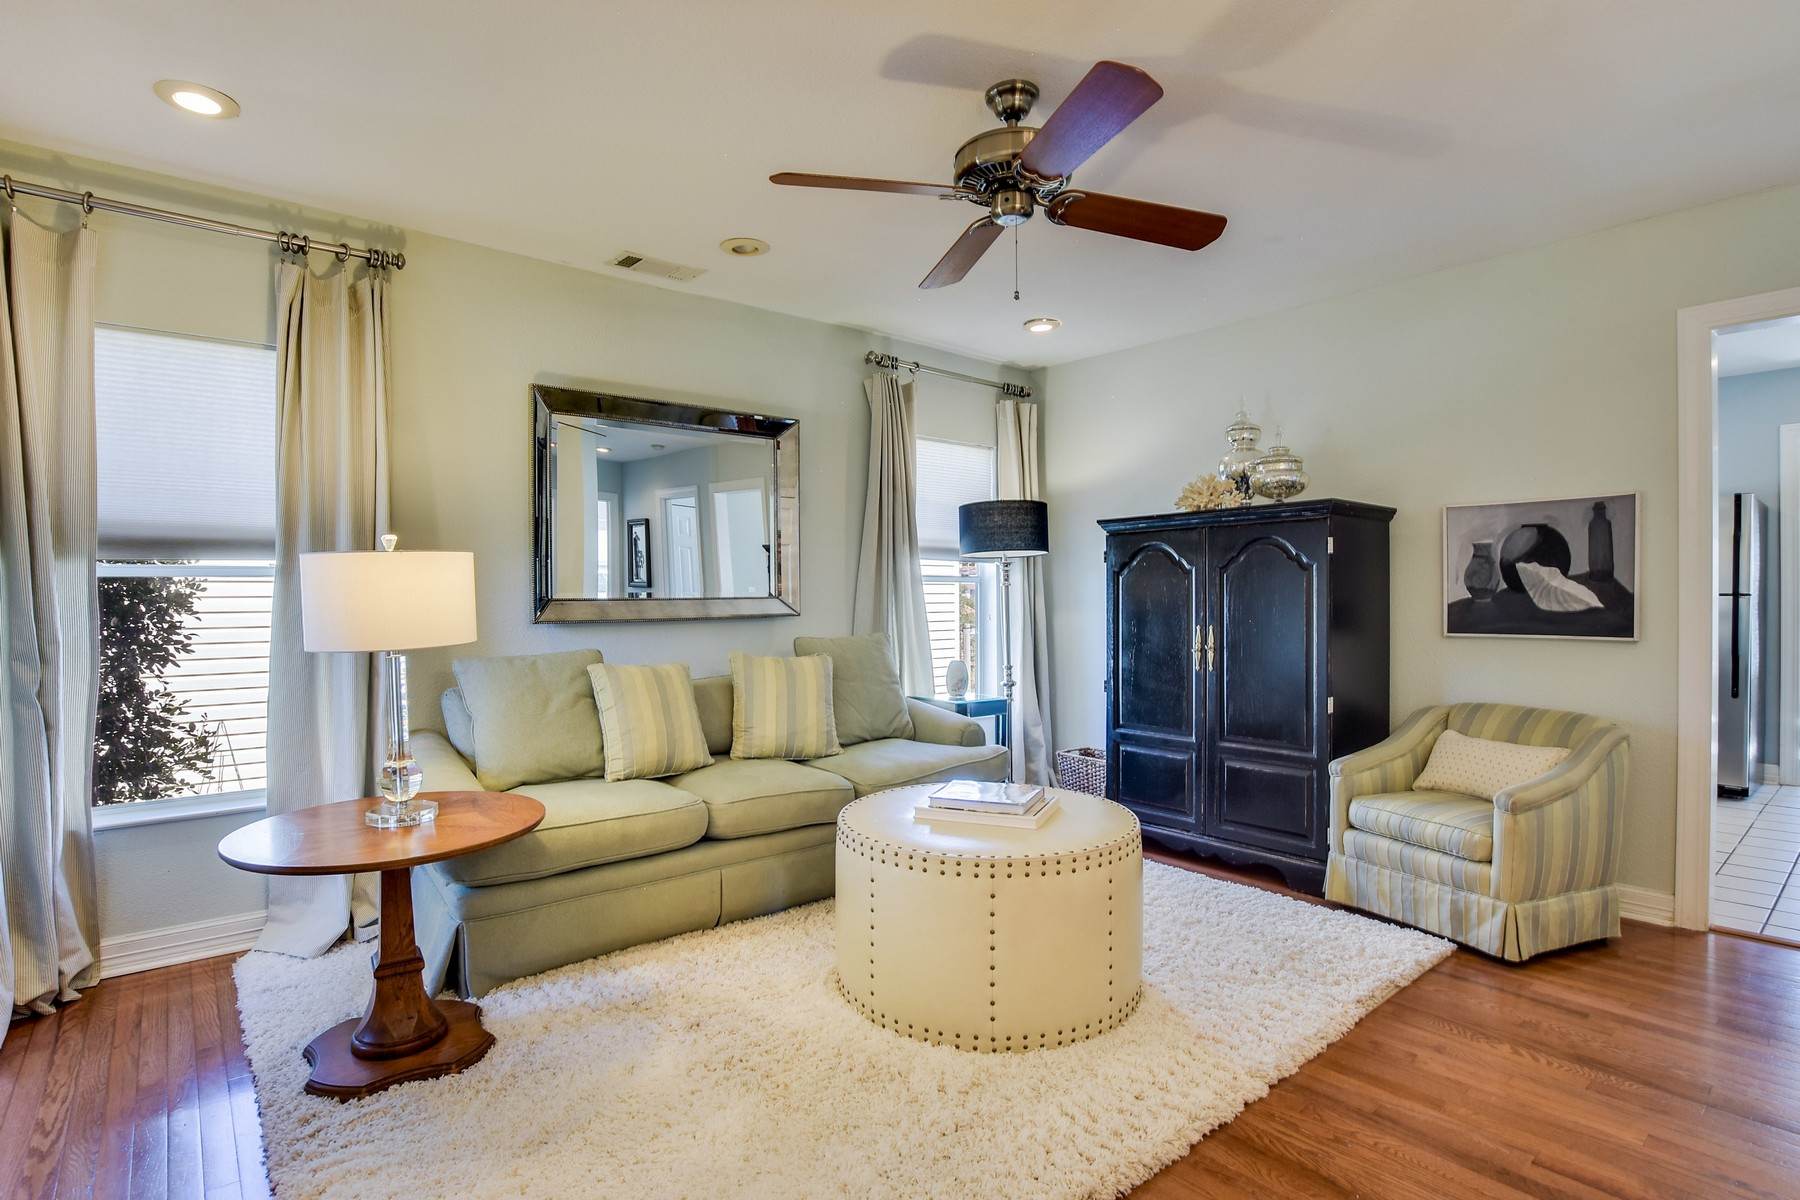 Additional photo for property listing at Elegant & traditional in Brentwood 1412 W 51rst St Austin, Texas 78756 United States